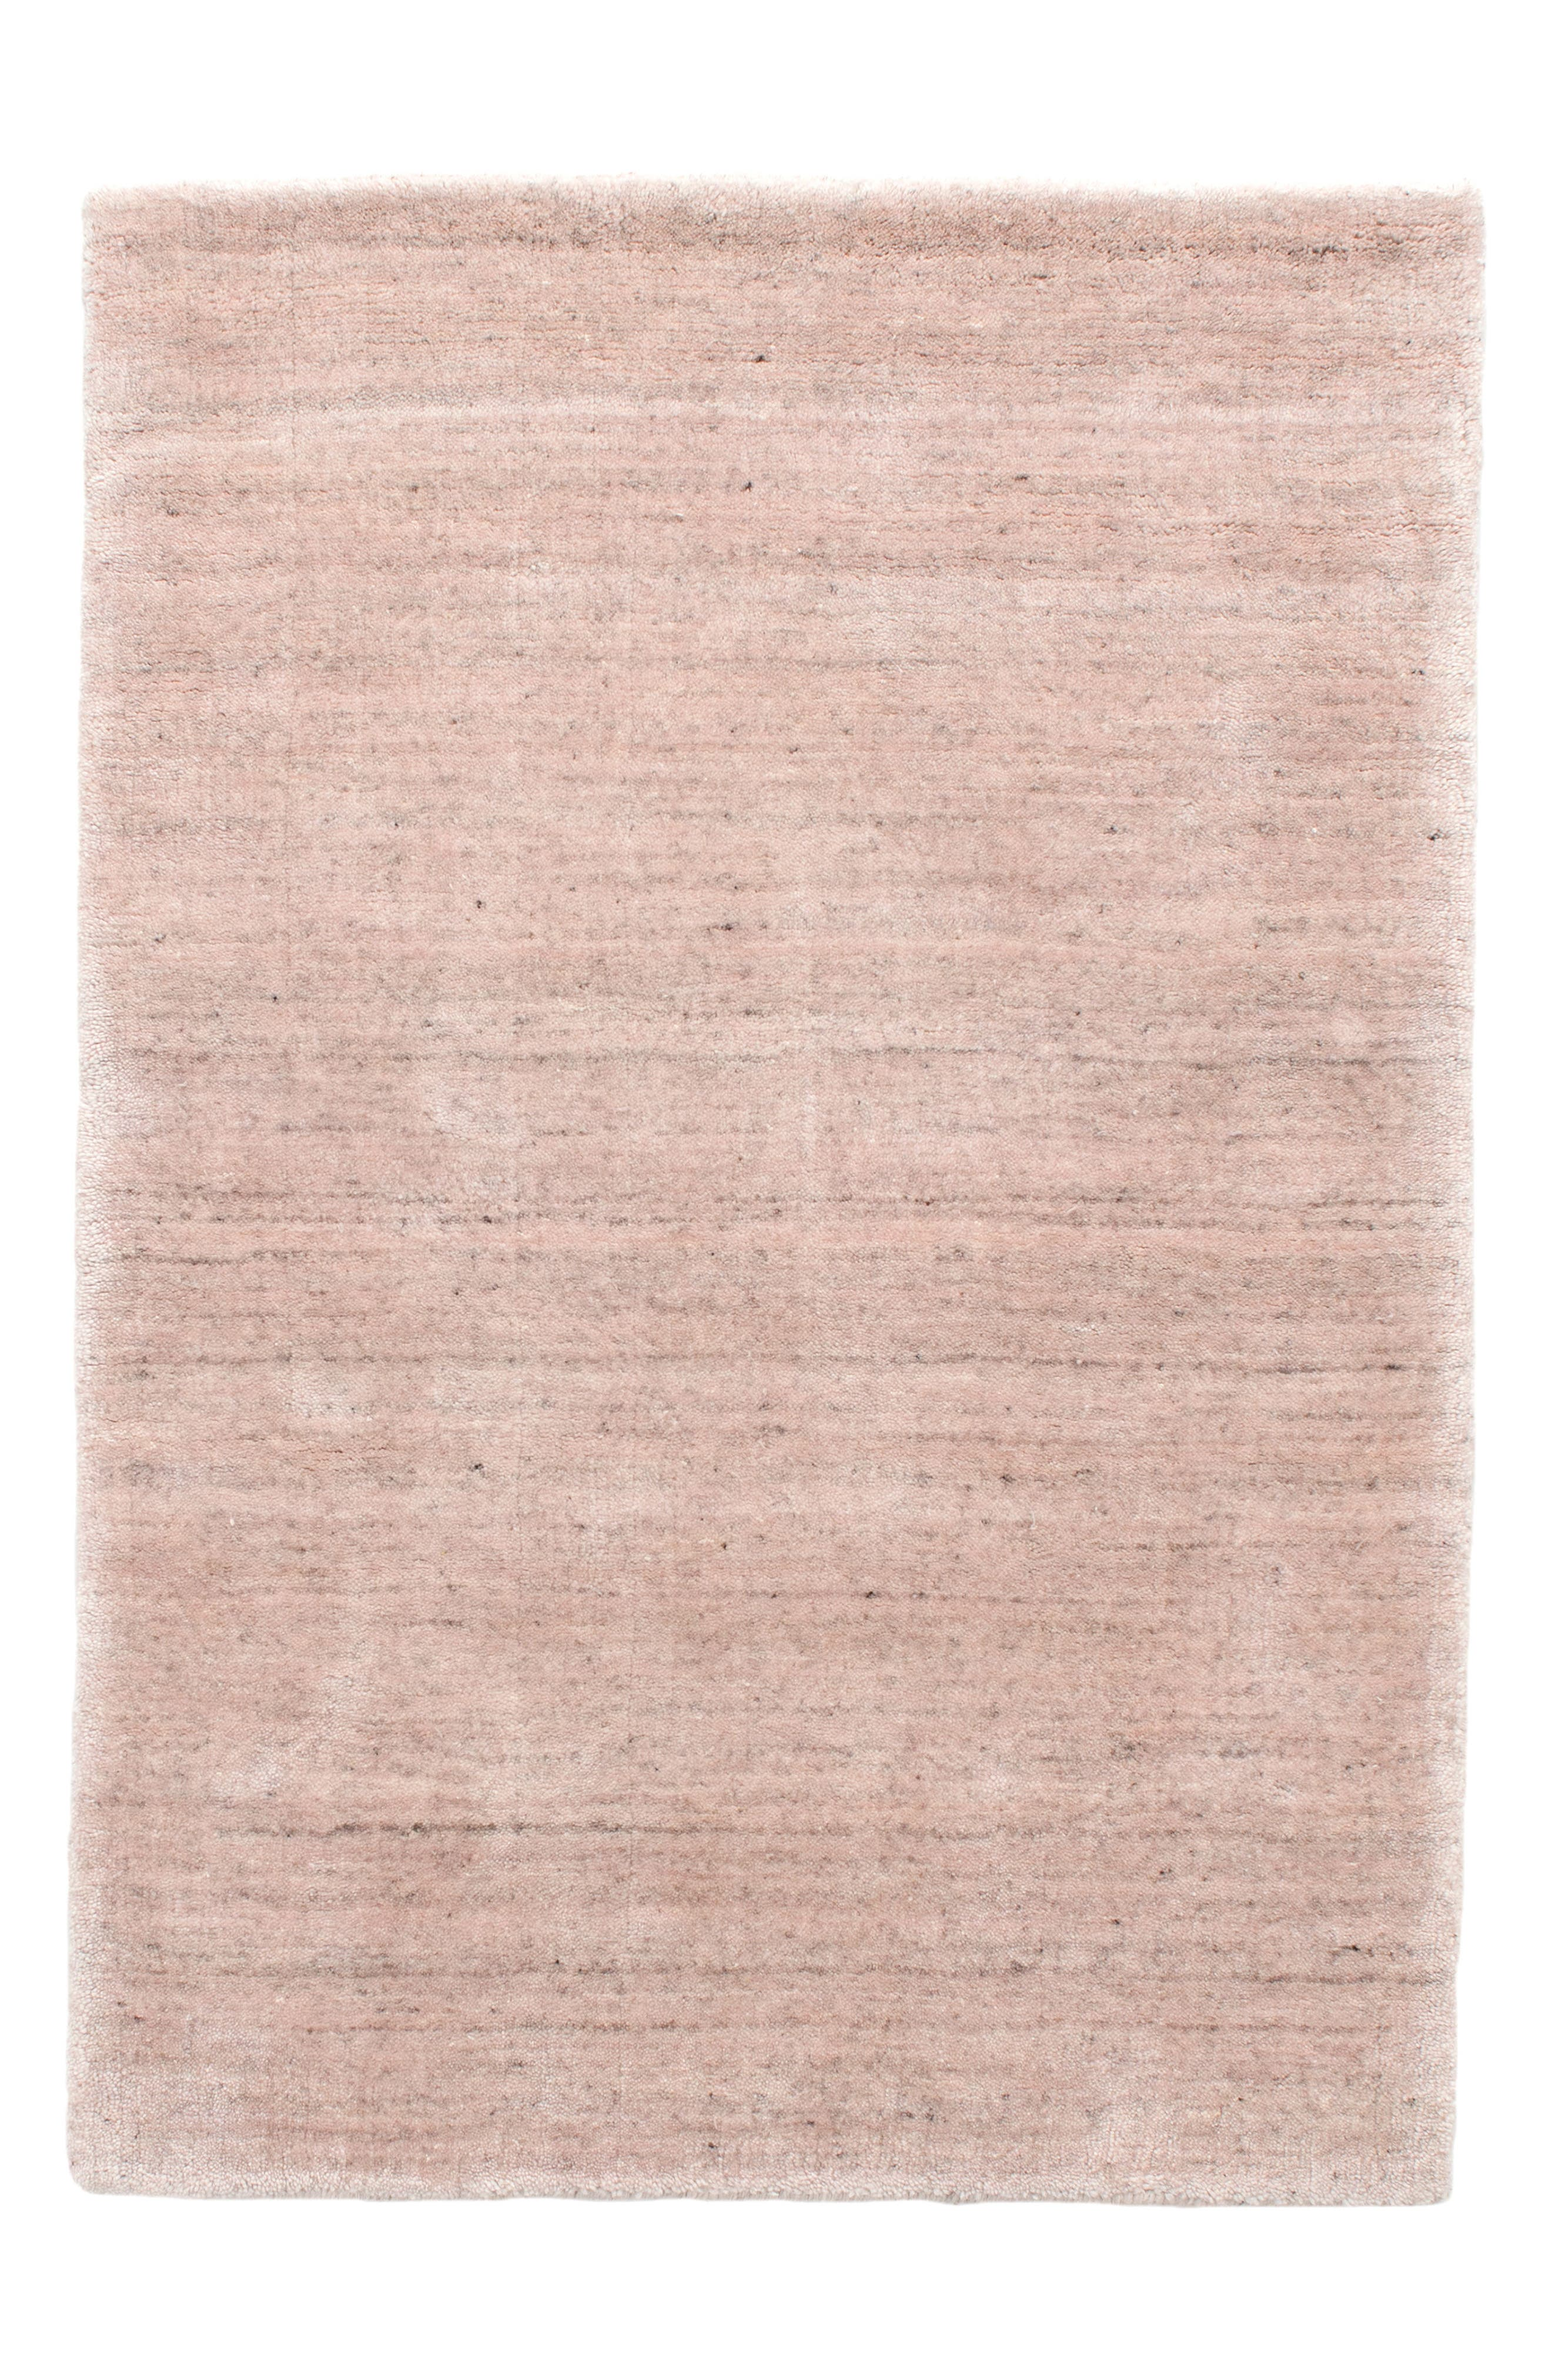 Icelandia Slipper Hand Knotted Rug,                             Main thumbnail 1, color,                             650